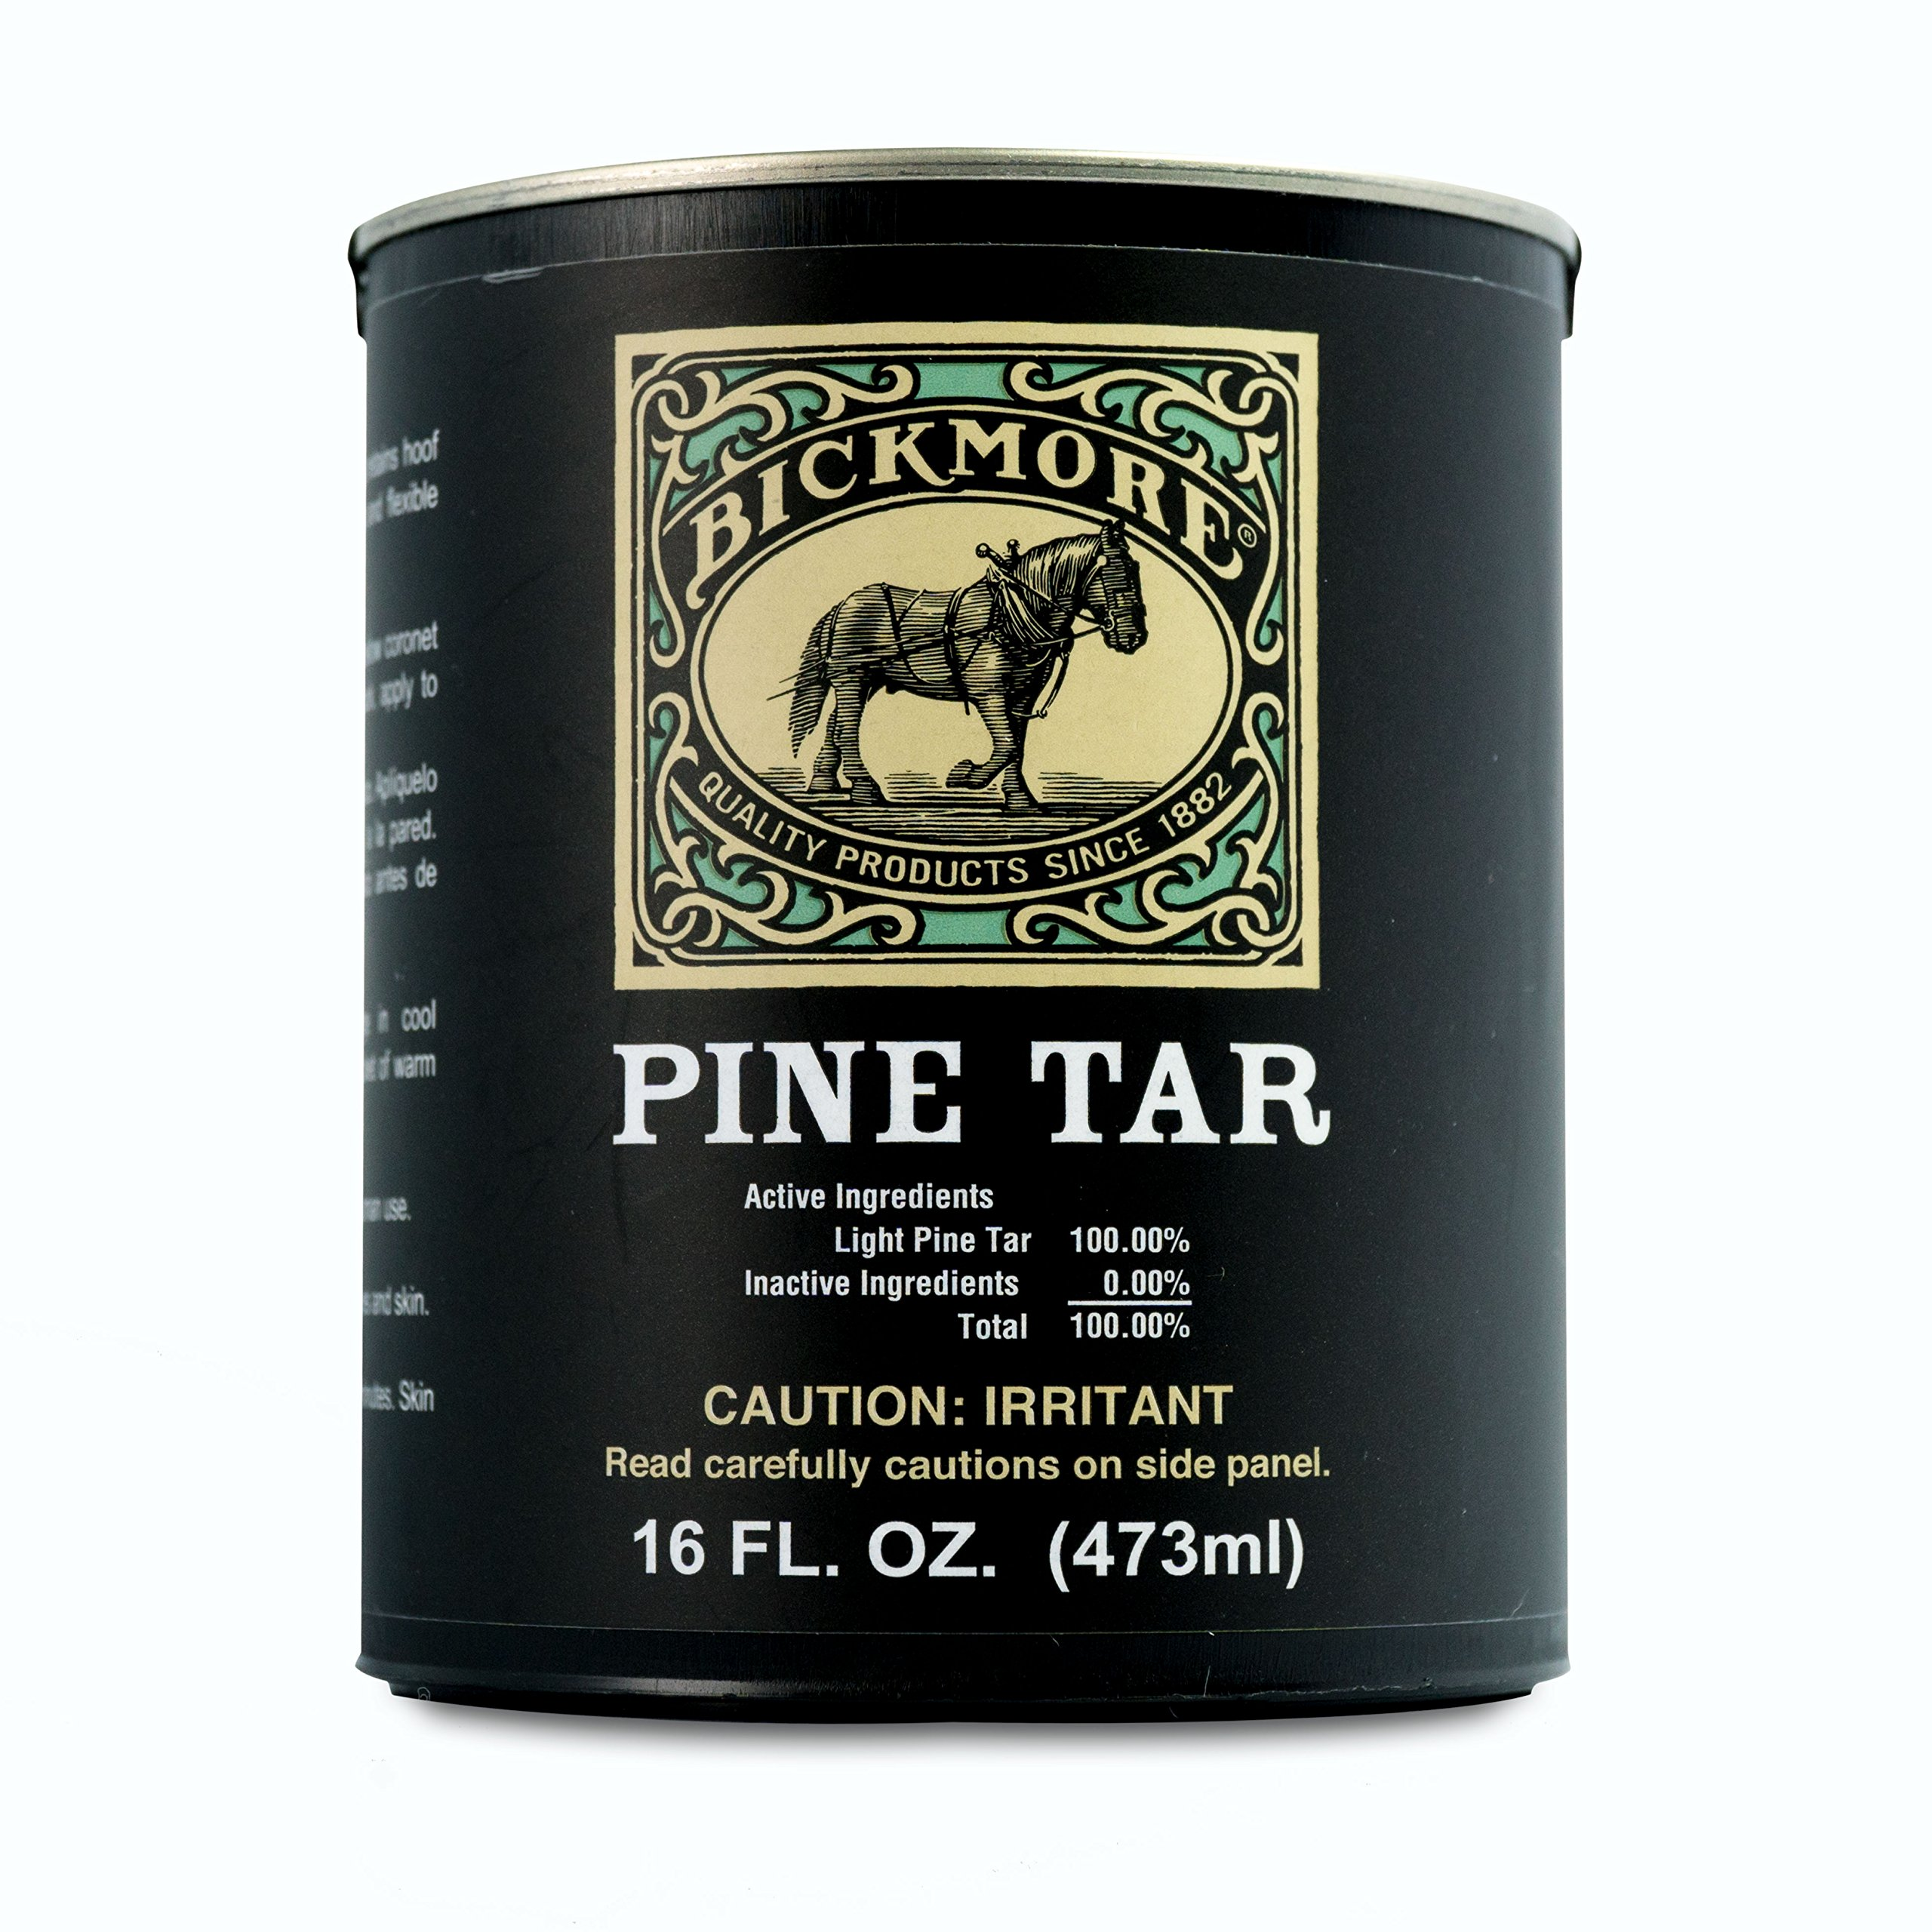 Bickmore Pine Tar 16oz - Hoof Care Formula For Horses by Bickmore